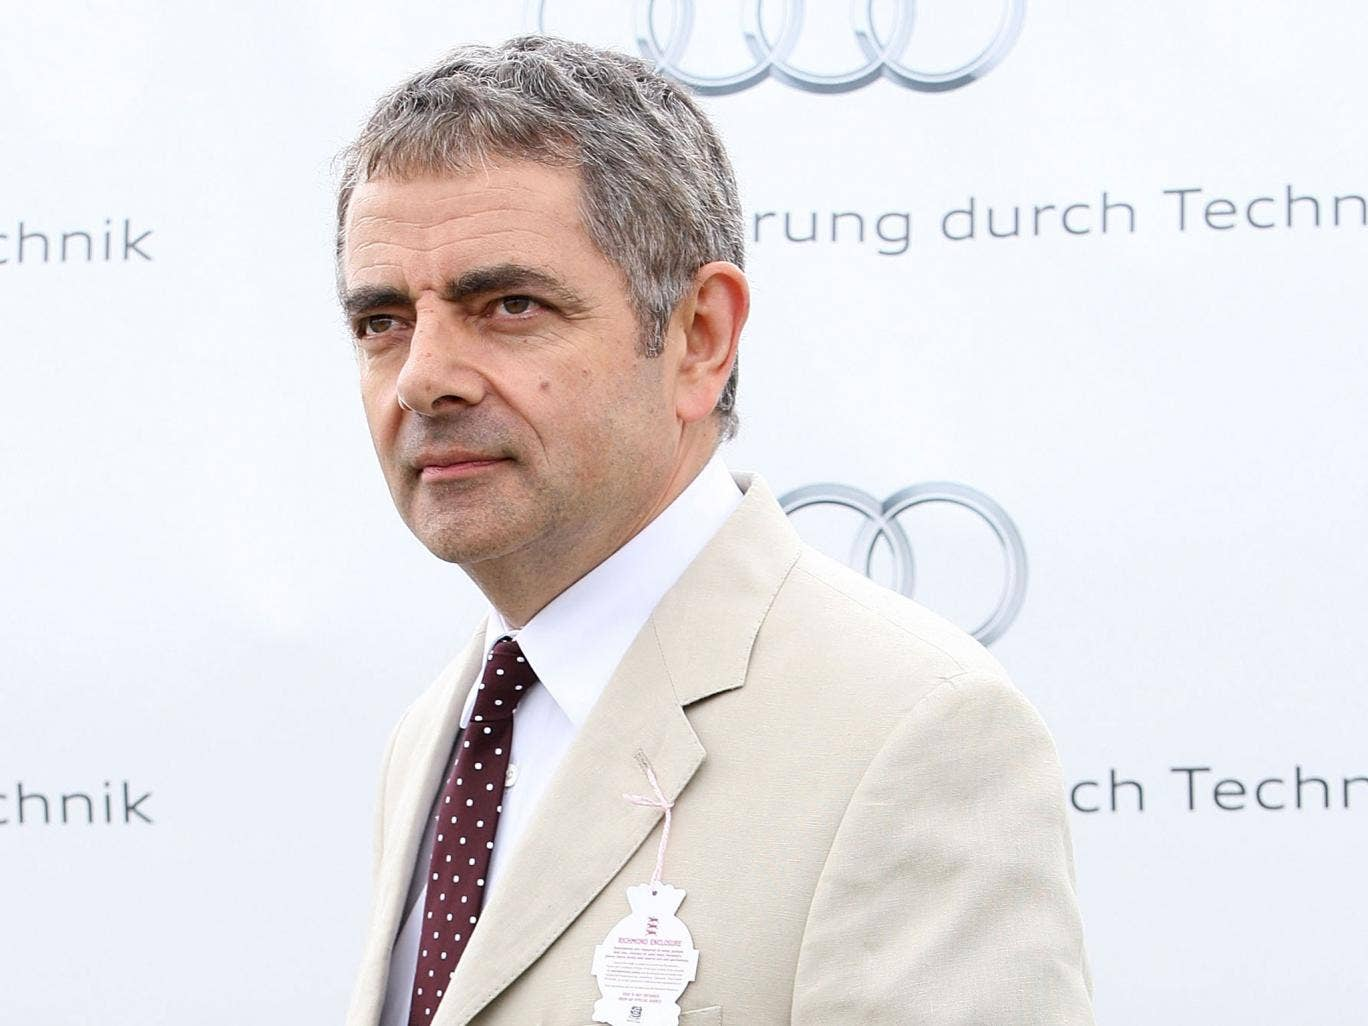 Rowan Atkinson's insurers have had to pay out a record repair bill for his McLaren F1 which he crashed in 2011